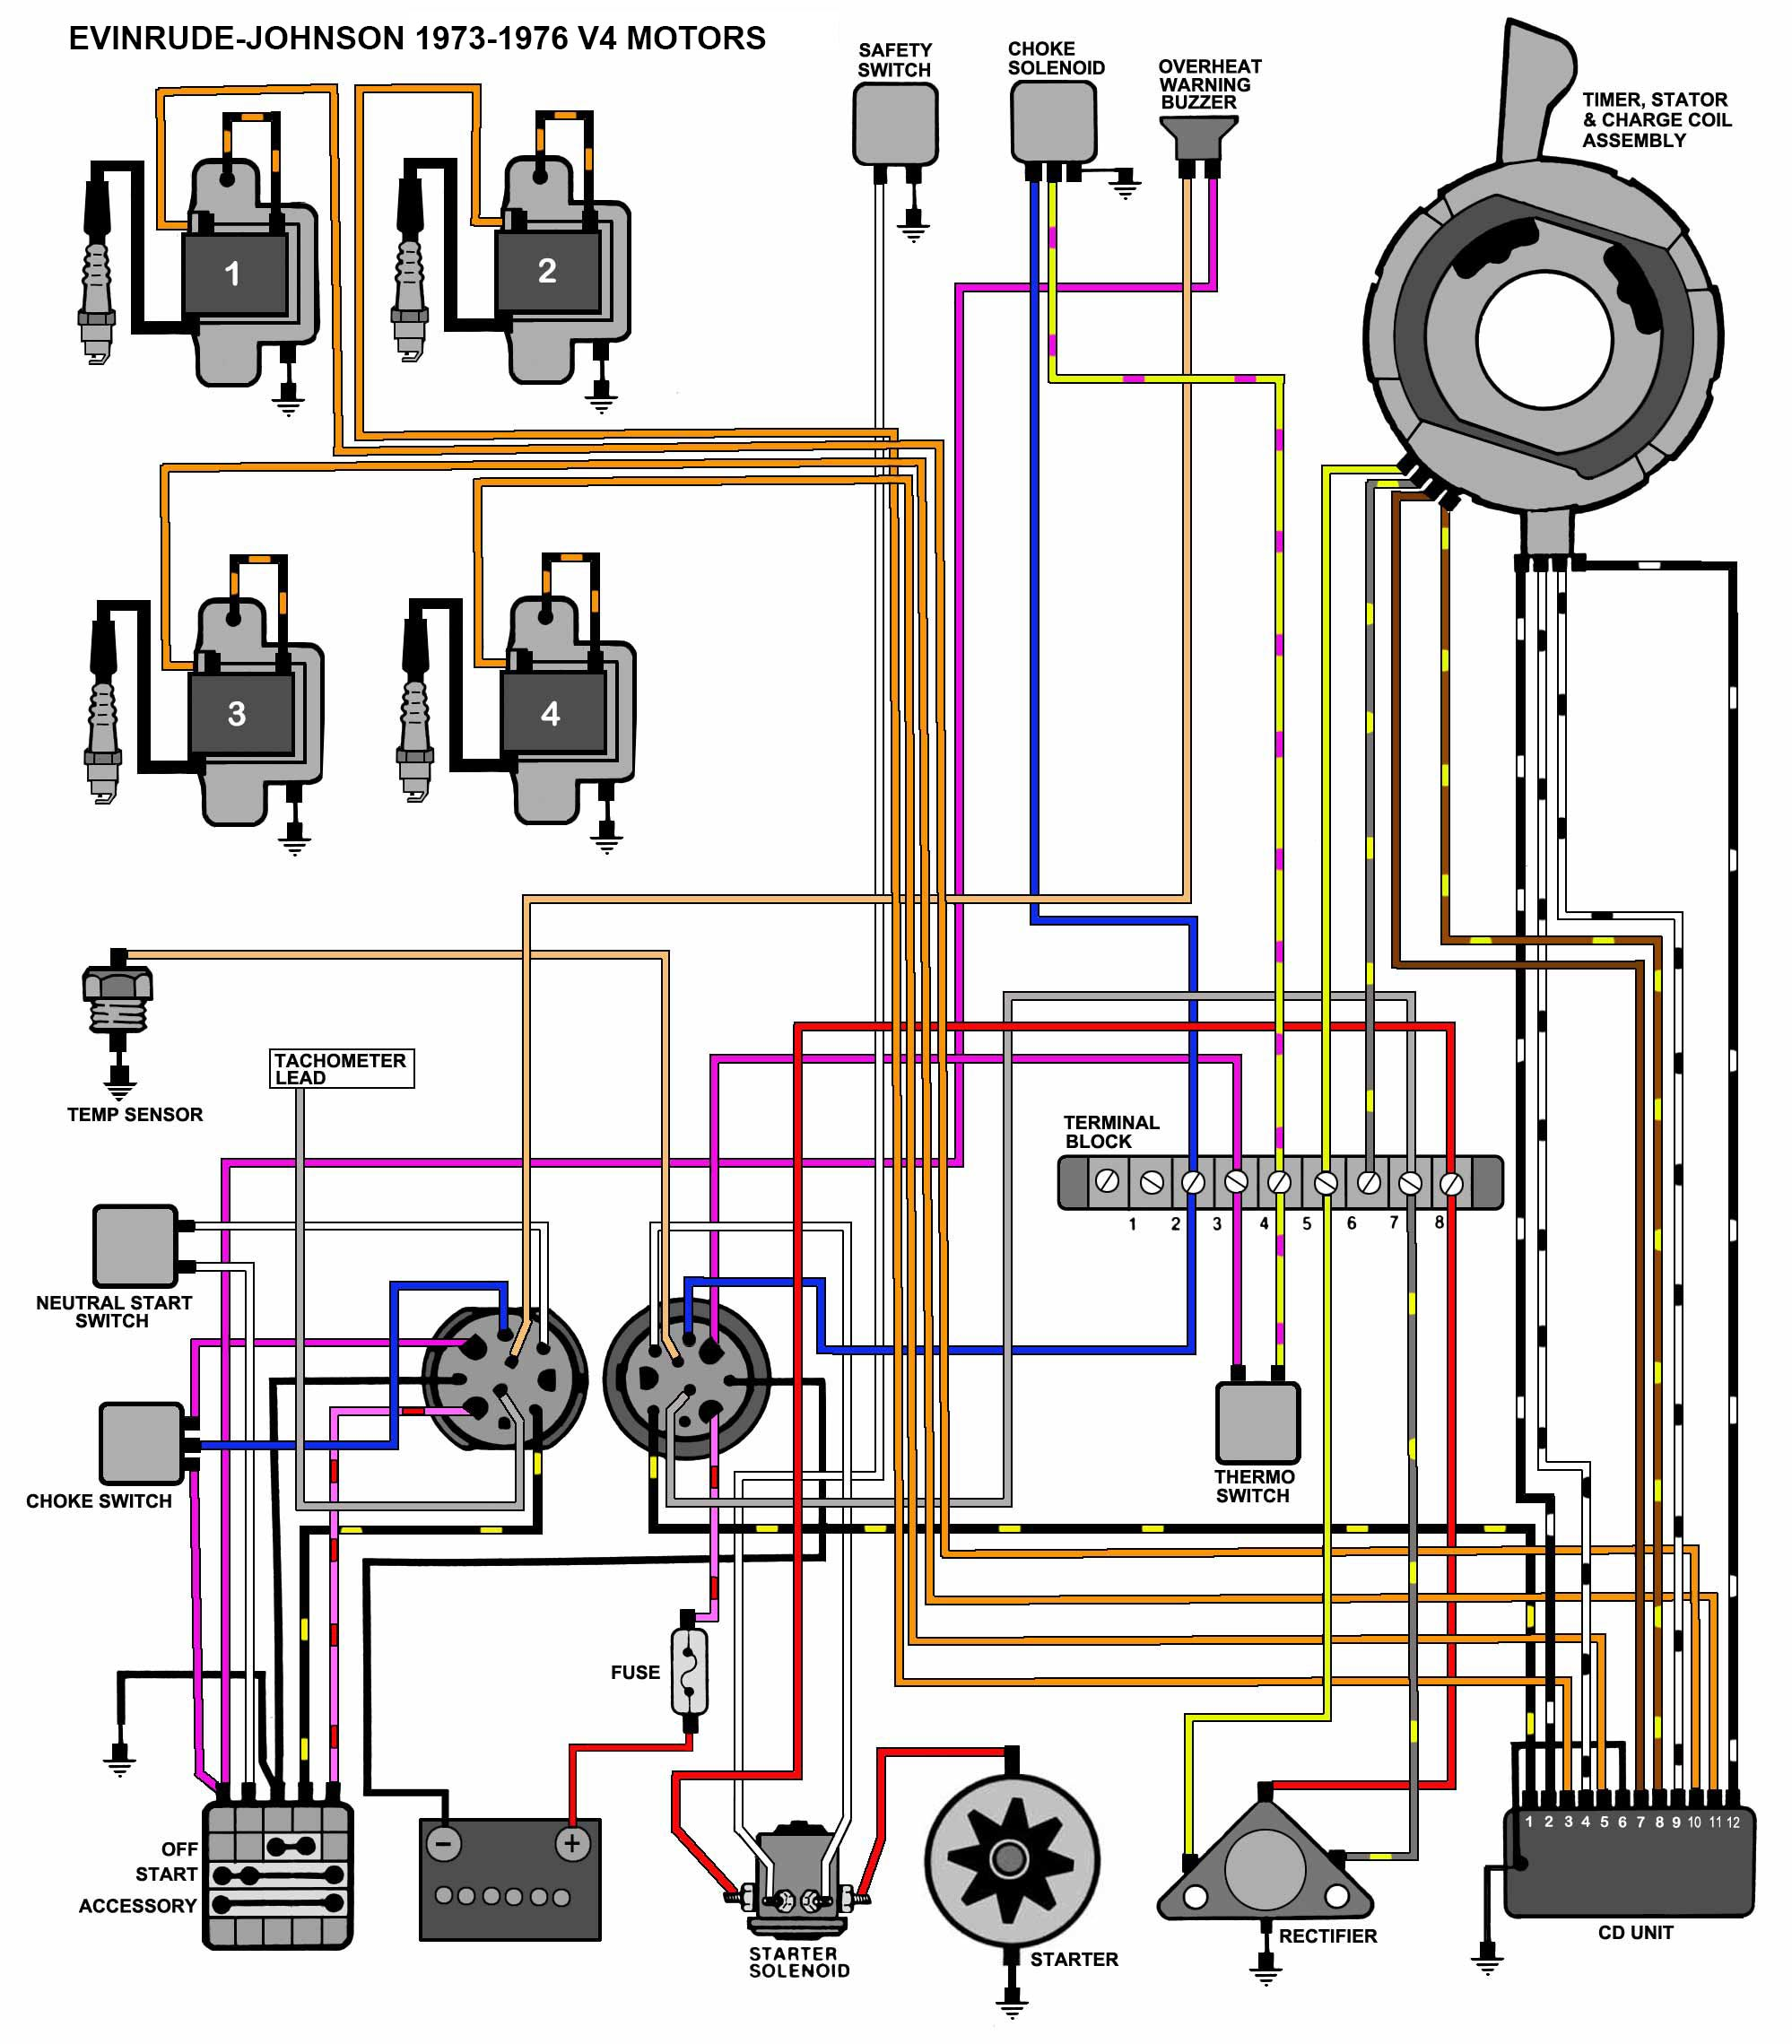 60hp Evinrude Ignition Switch Wiring Diagram - Wiring Diagram NetworksWiring Diagram Networks - blogger